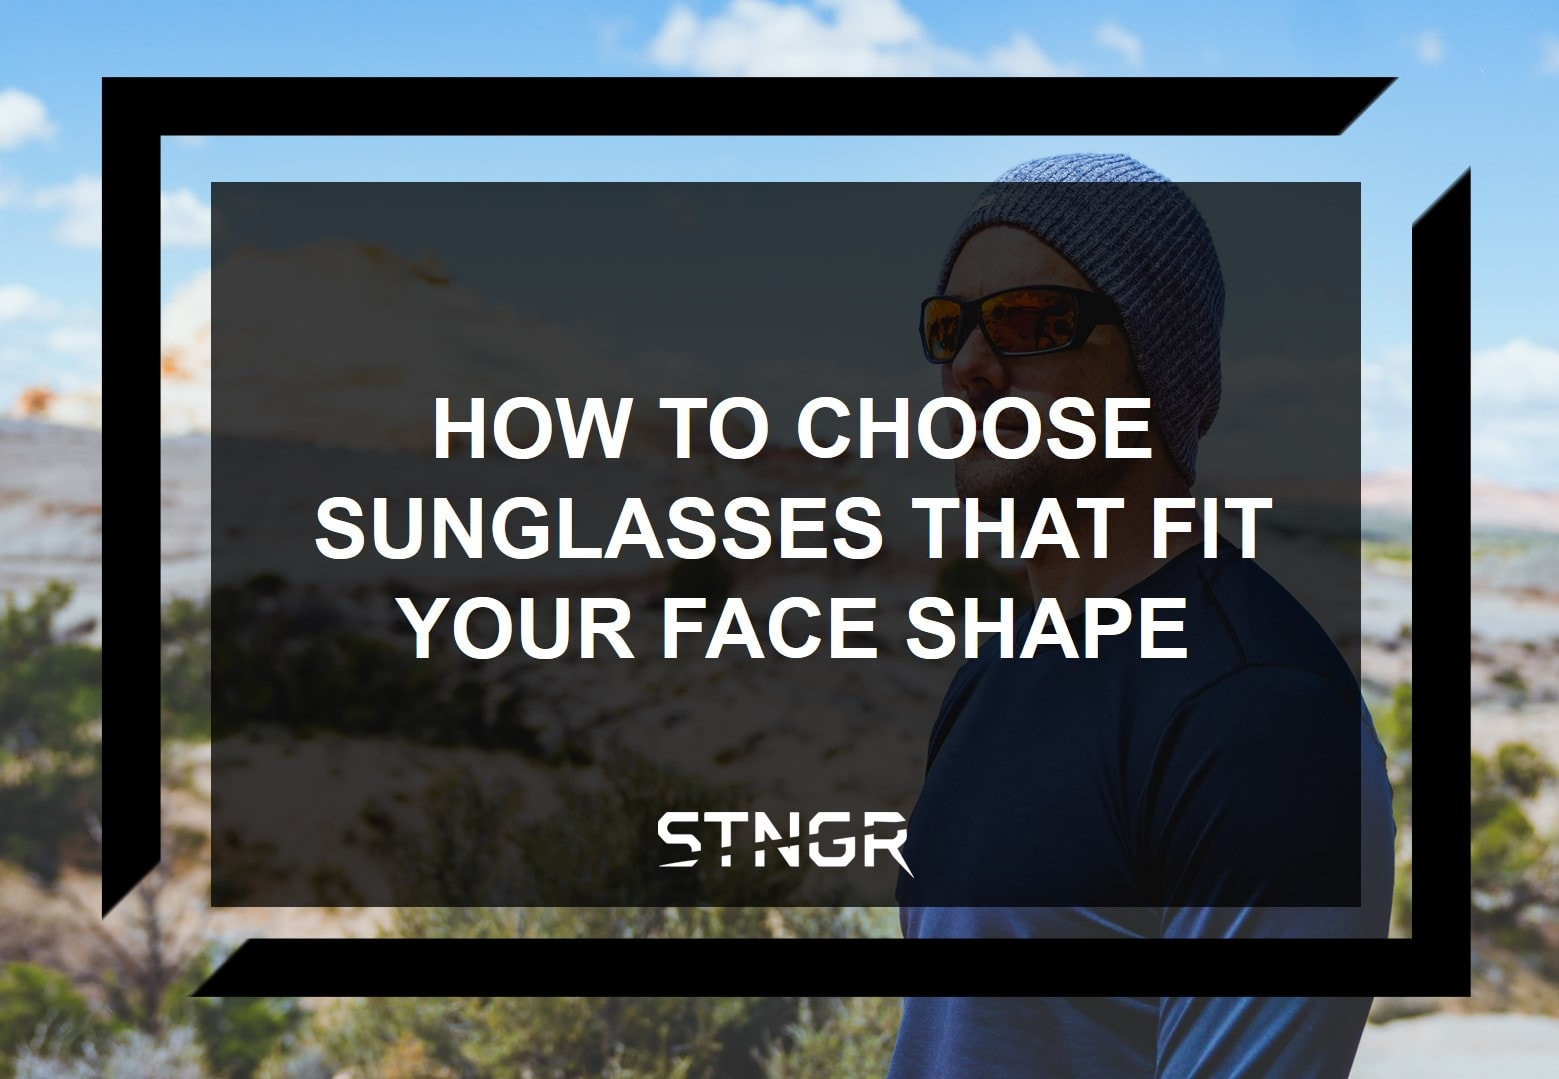 How to Choose Sunglasses That Fit Your Face Shape